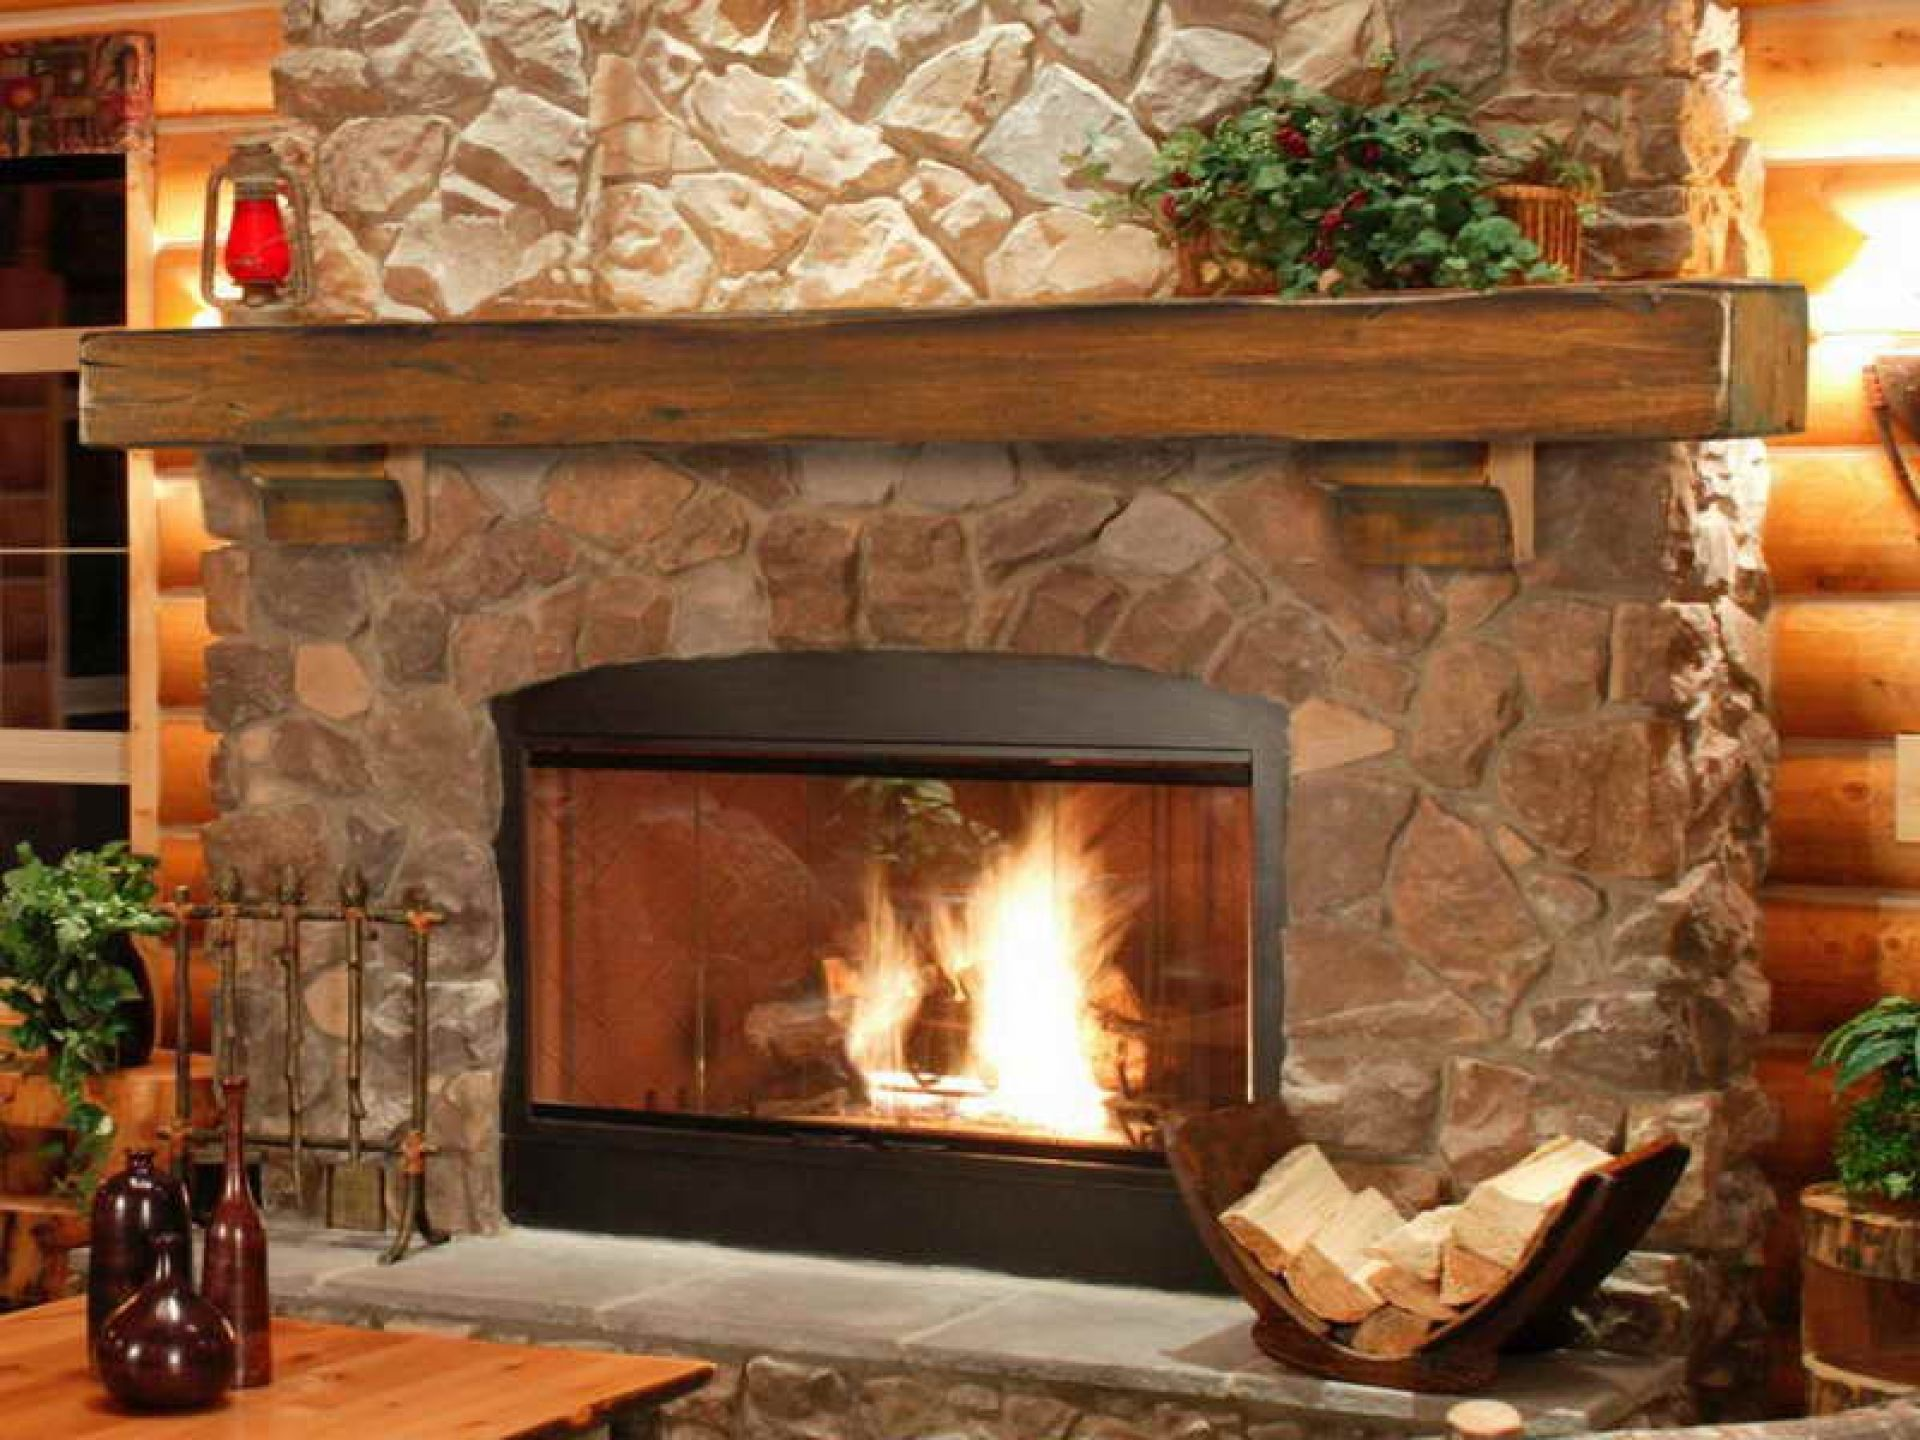 Cool stone fireplace mantels for interior design natural for Interior fireplaces designs